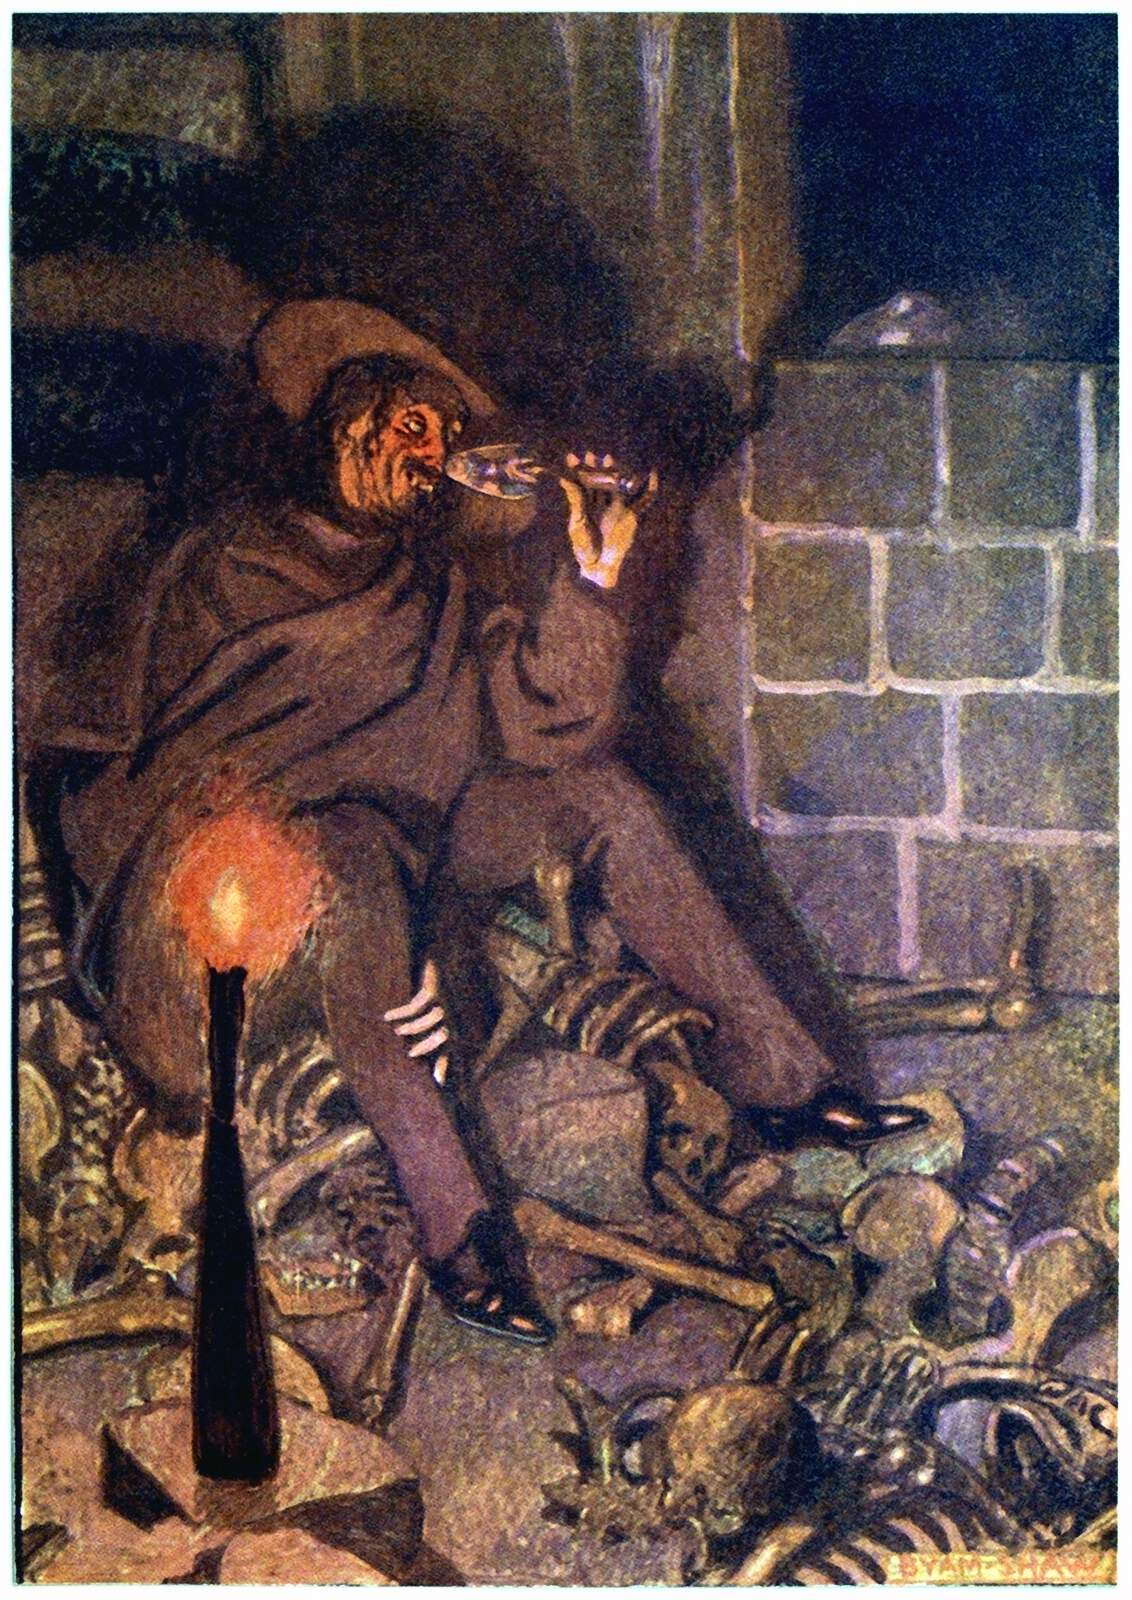 The Cask Of Amontillado Old Book Illustrations